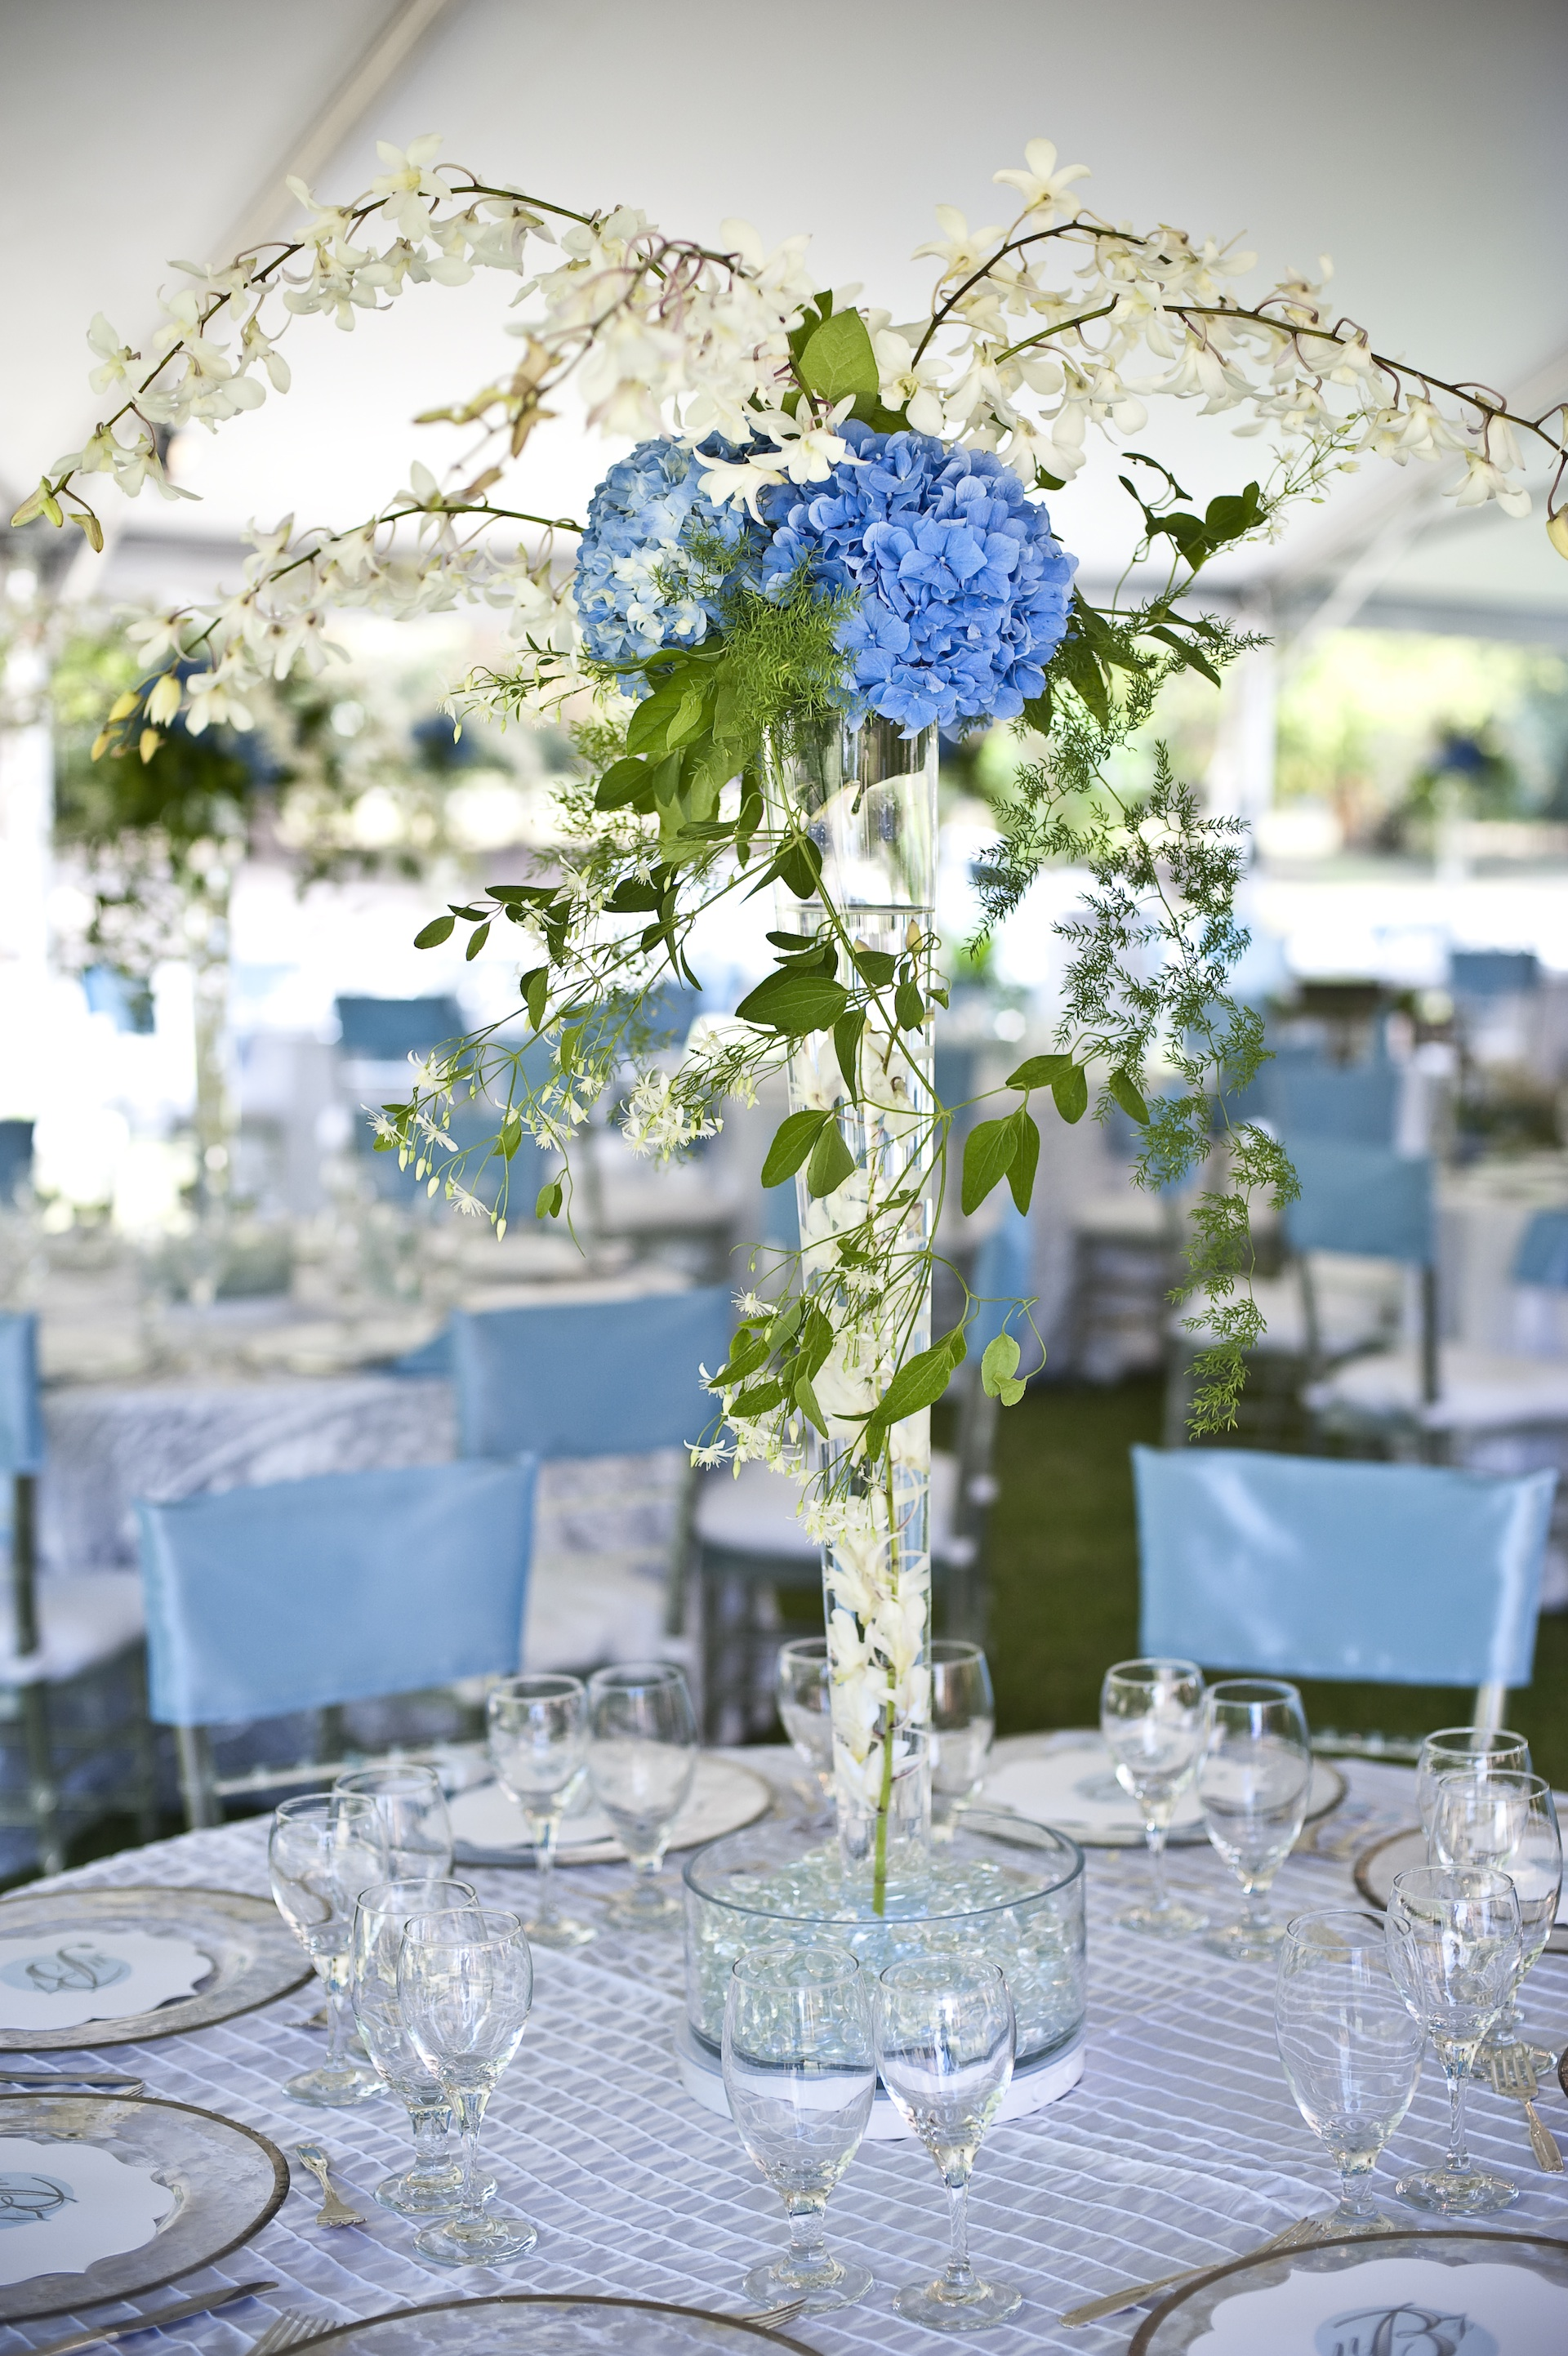 Elegant-hydrangea-wedding-centerpiece-blue-green-ivory.original